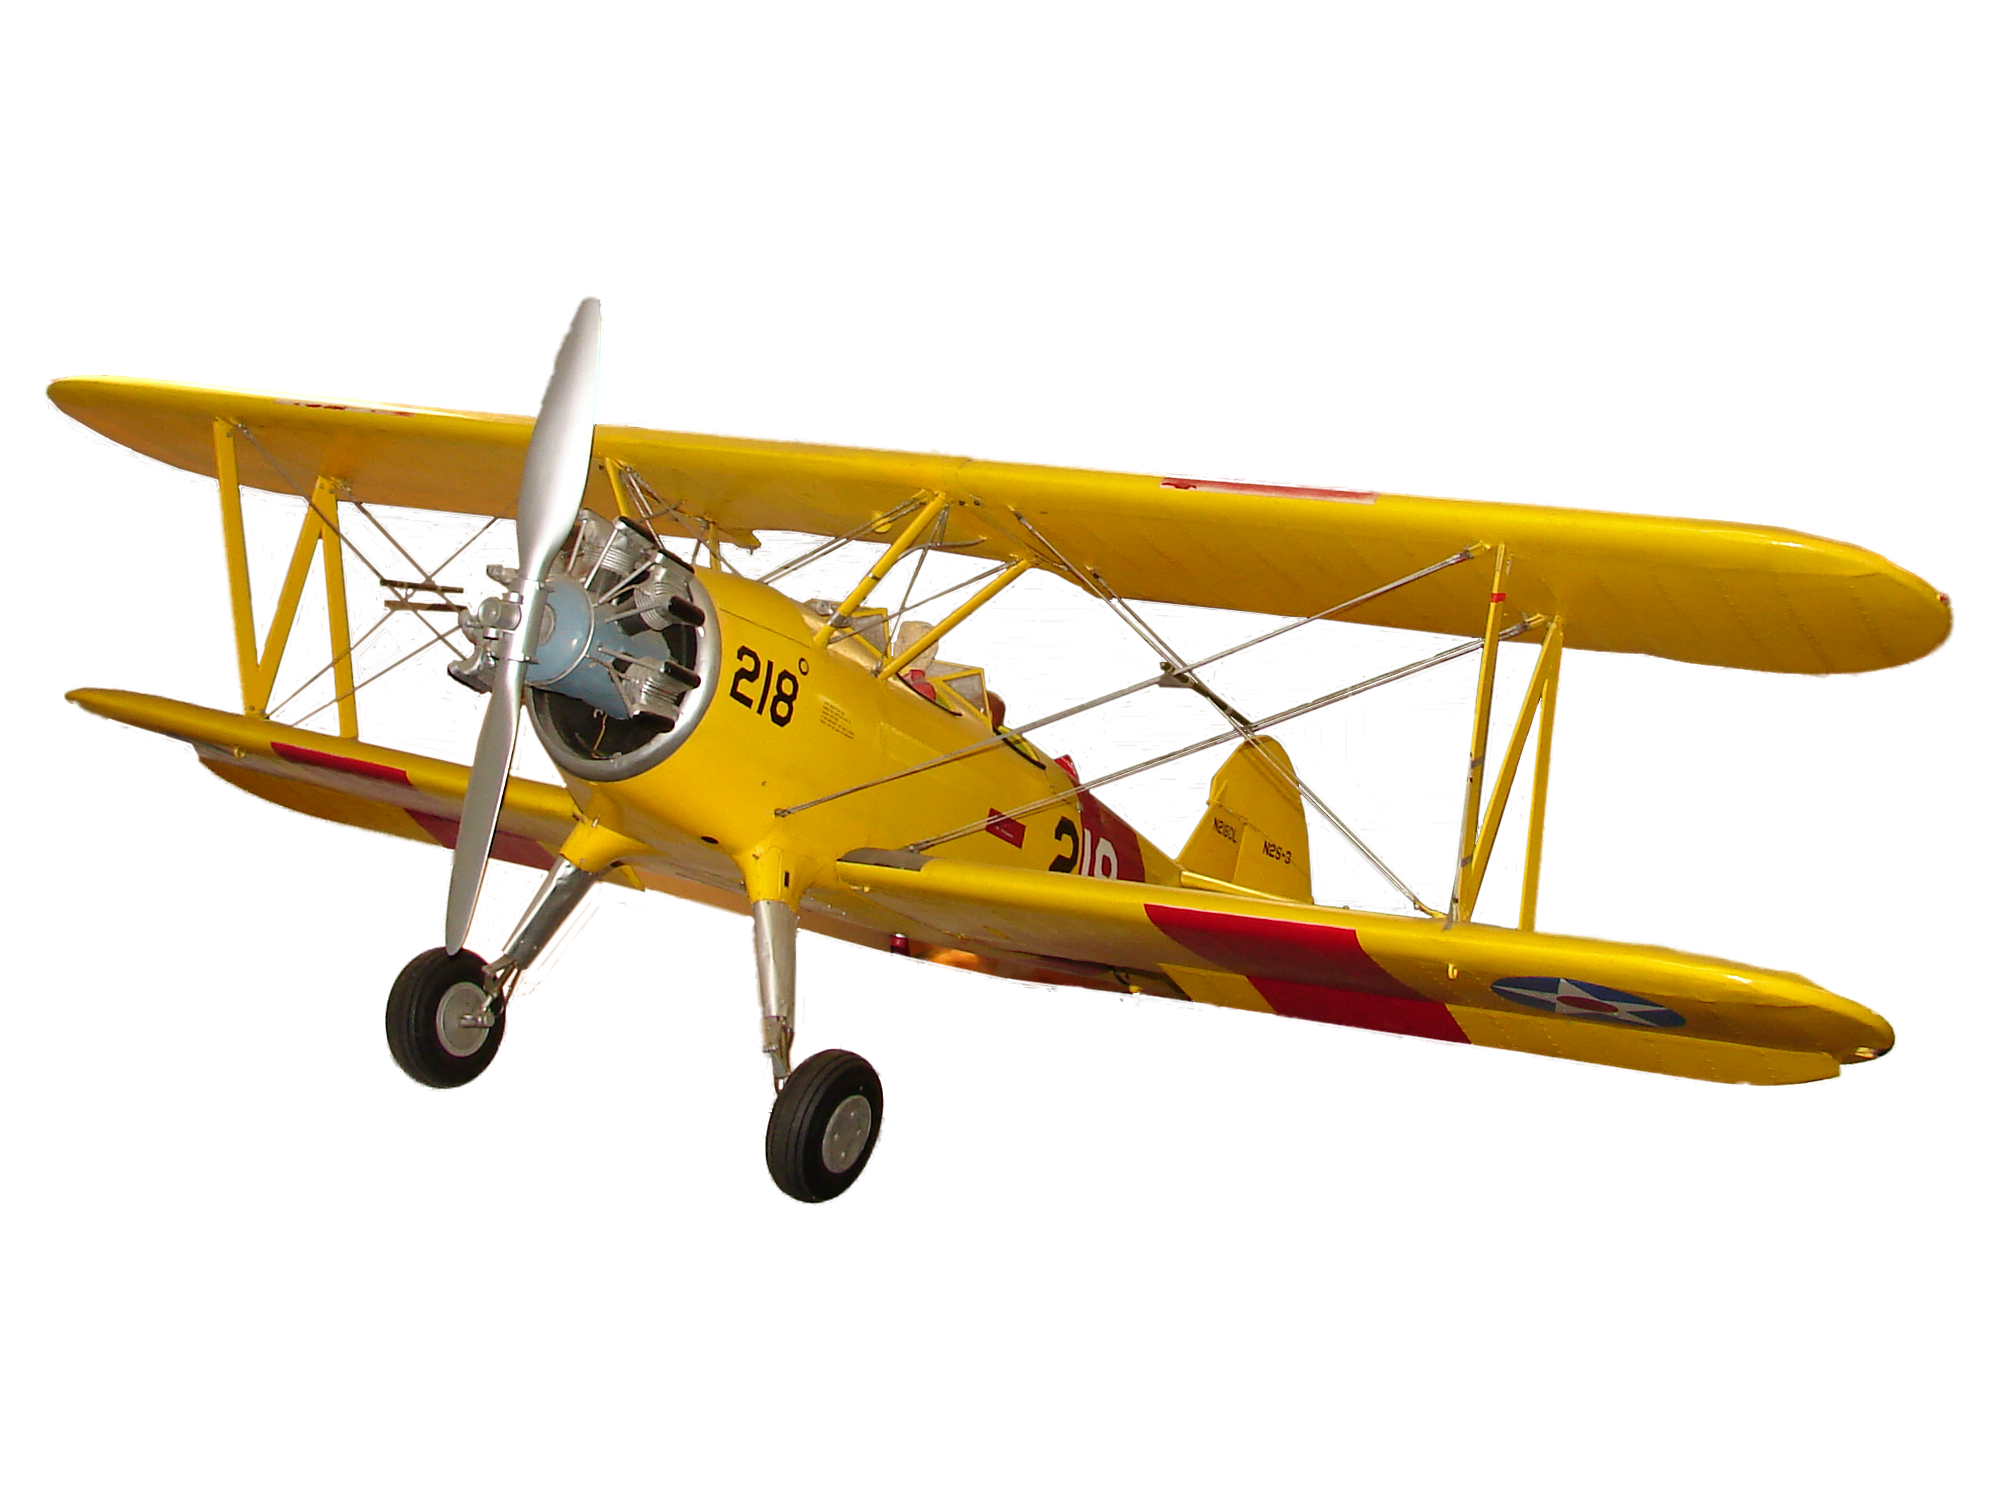 Airplane With Banner Png | Clipart Panda - Free Clipart Images Vintage Airplane With Banner Clipart